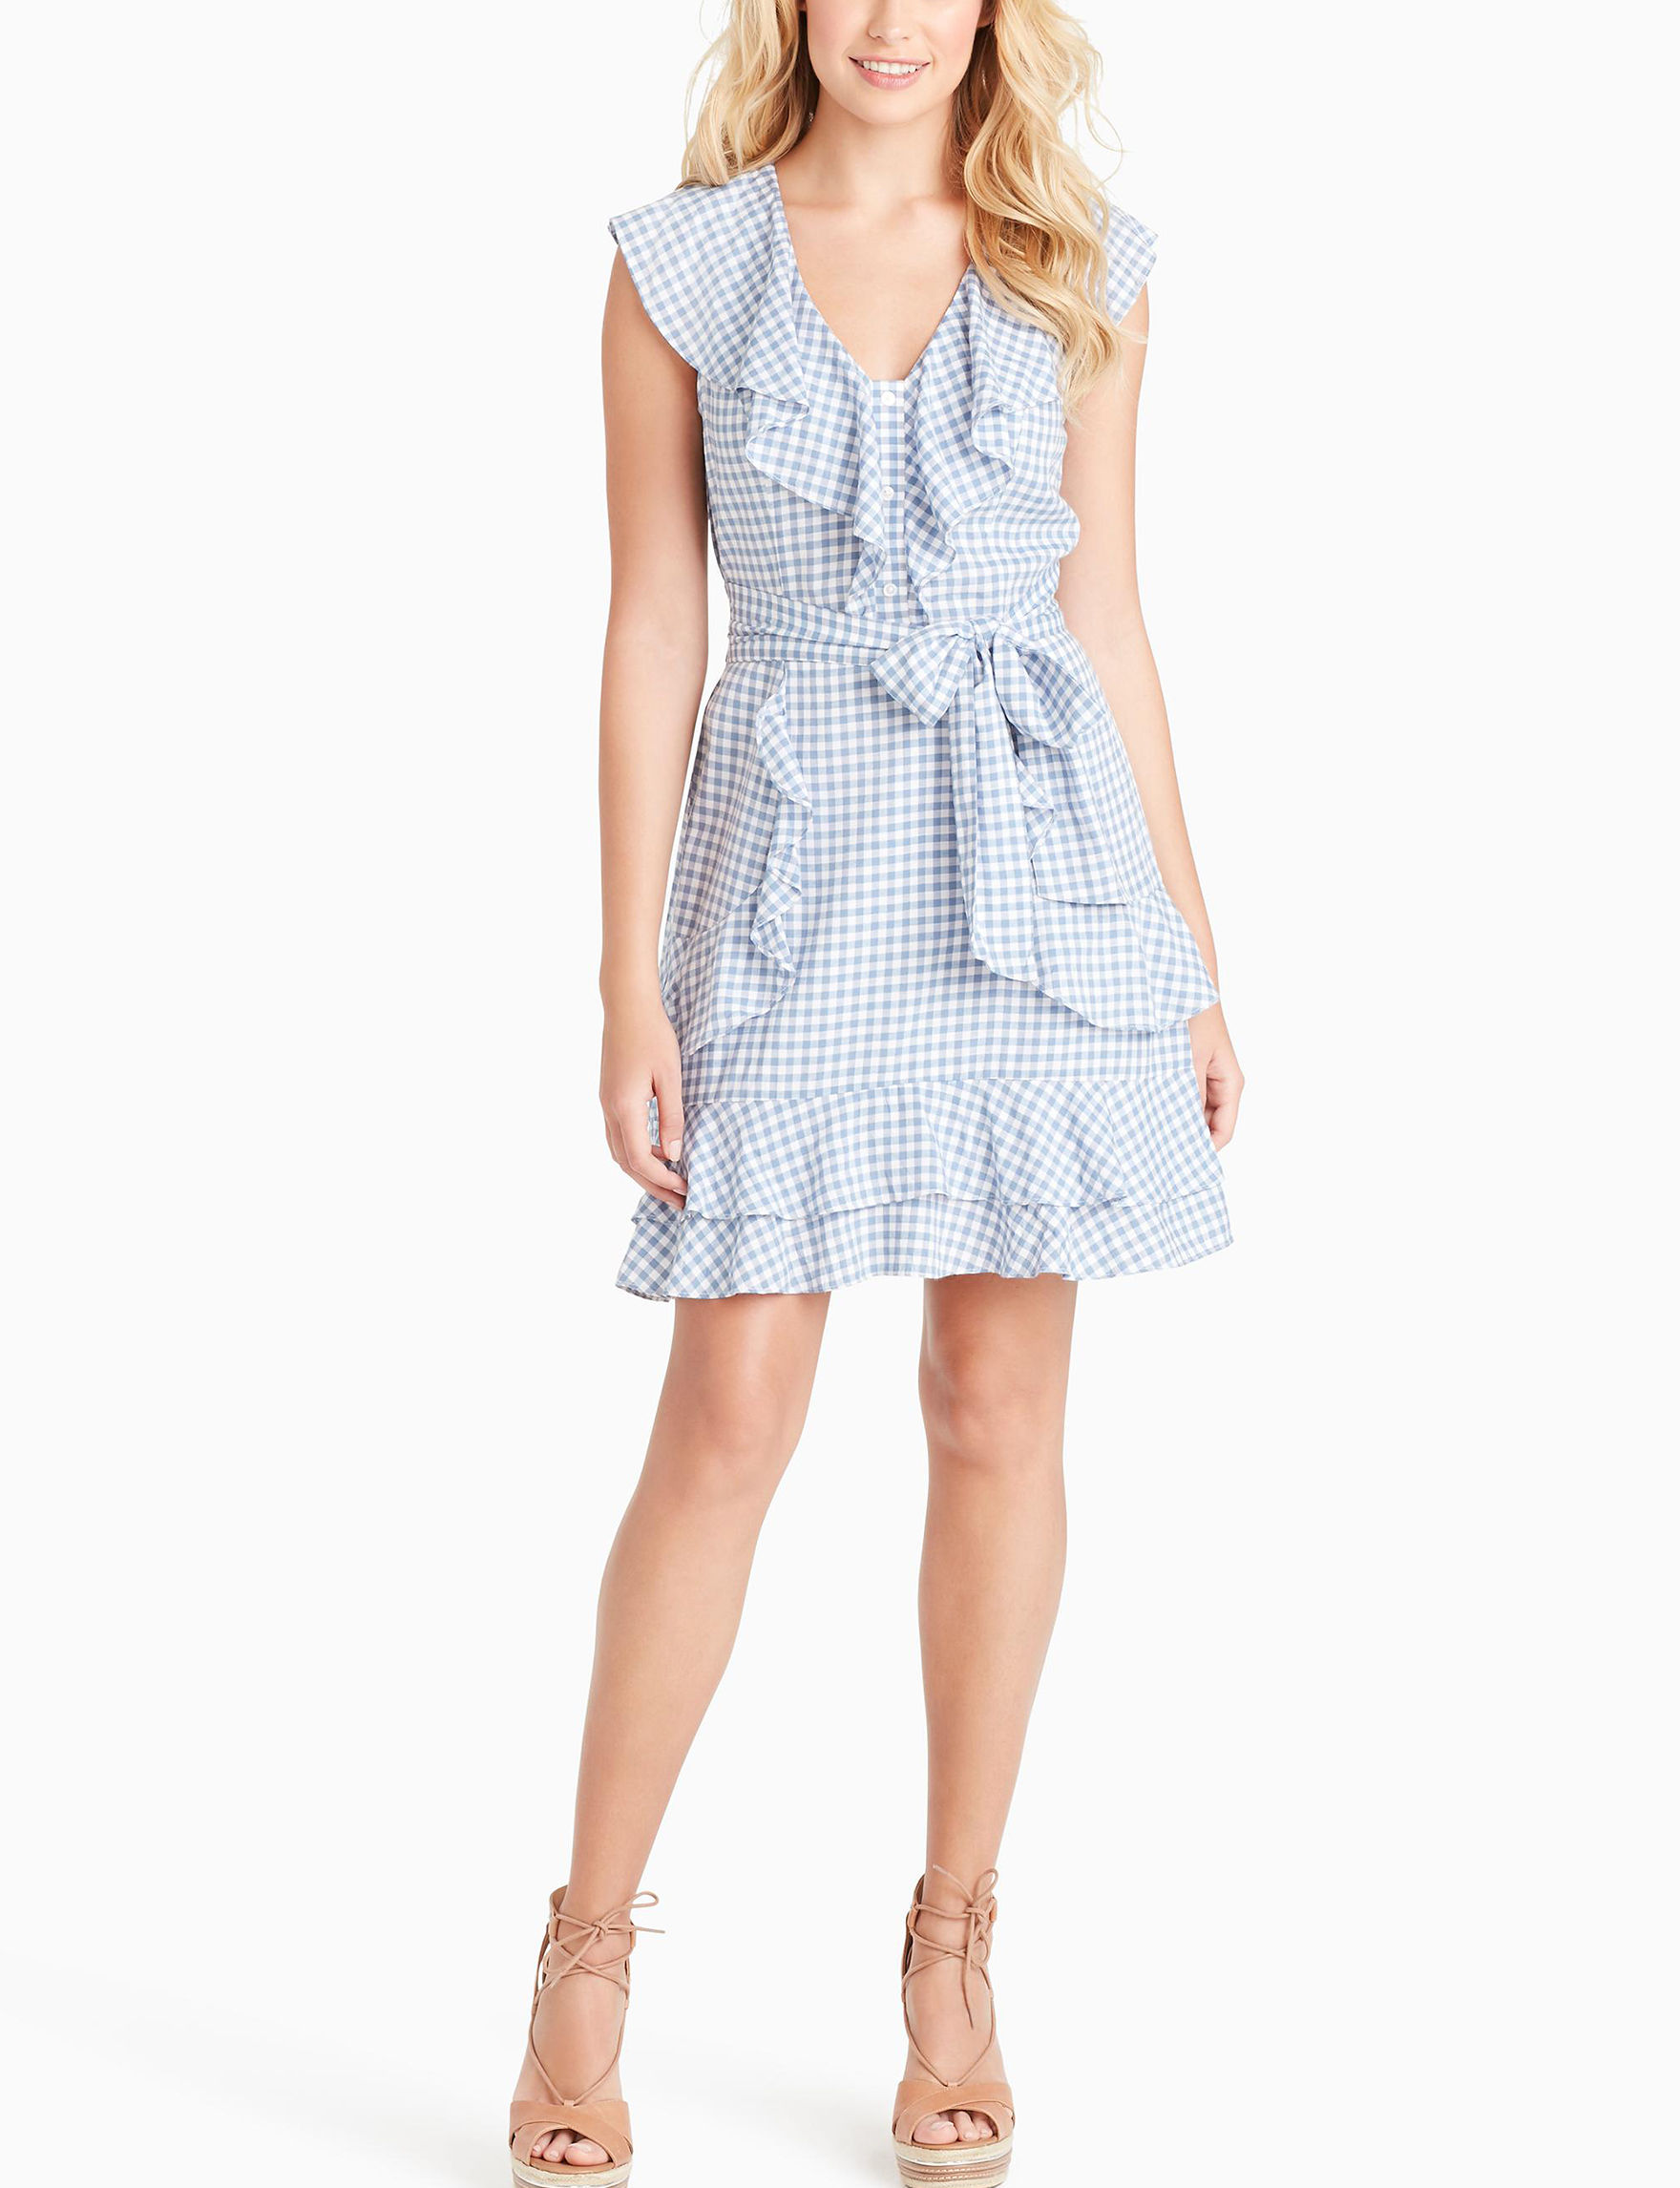 Jessica Simpson Blue Gingham Everyday & Casual